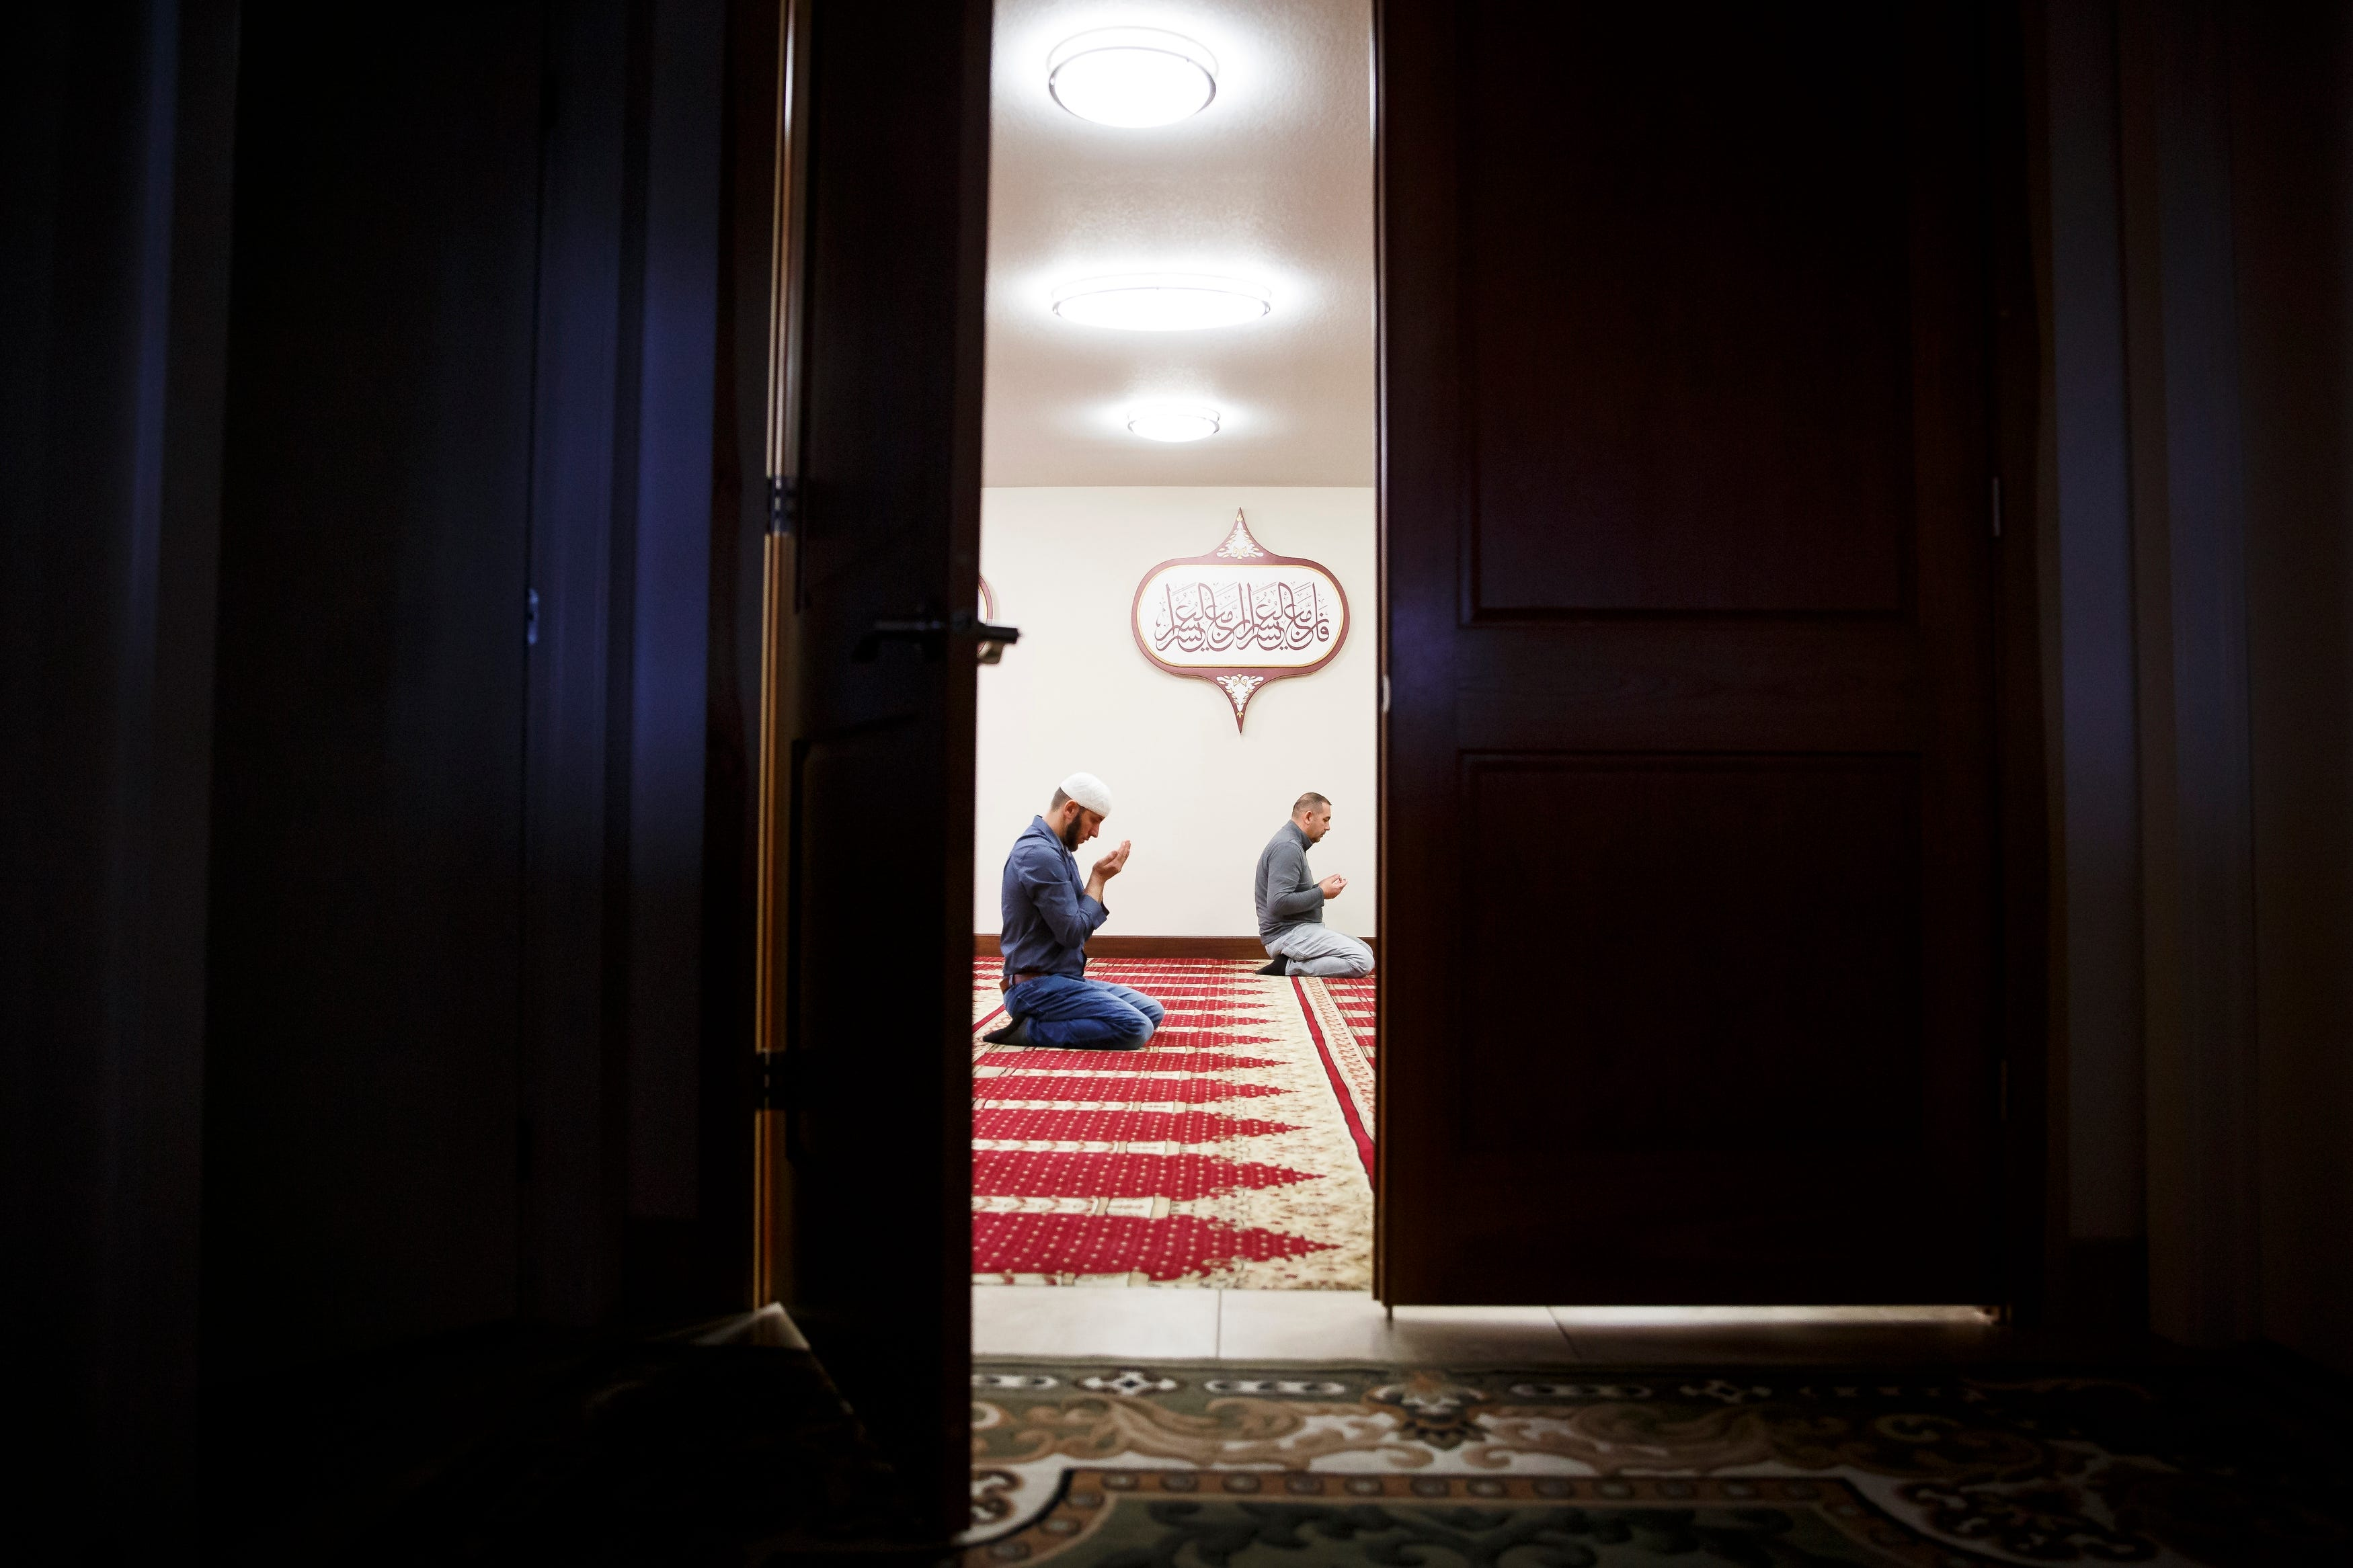 """Meho Music prays during Jumah Prayer at the Islamic and Cultural Center Bosniak in Granger on Friday, March 27, 2020. The Friday prayer usually fills the room, but to comply with social-distancing rules, the ICC limited the prayer to just members of the board. """"We have to respect the blessings we have,"""" Imam Nermin Spahić said, adding that, right now, """"This is the best option for us."""""""